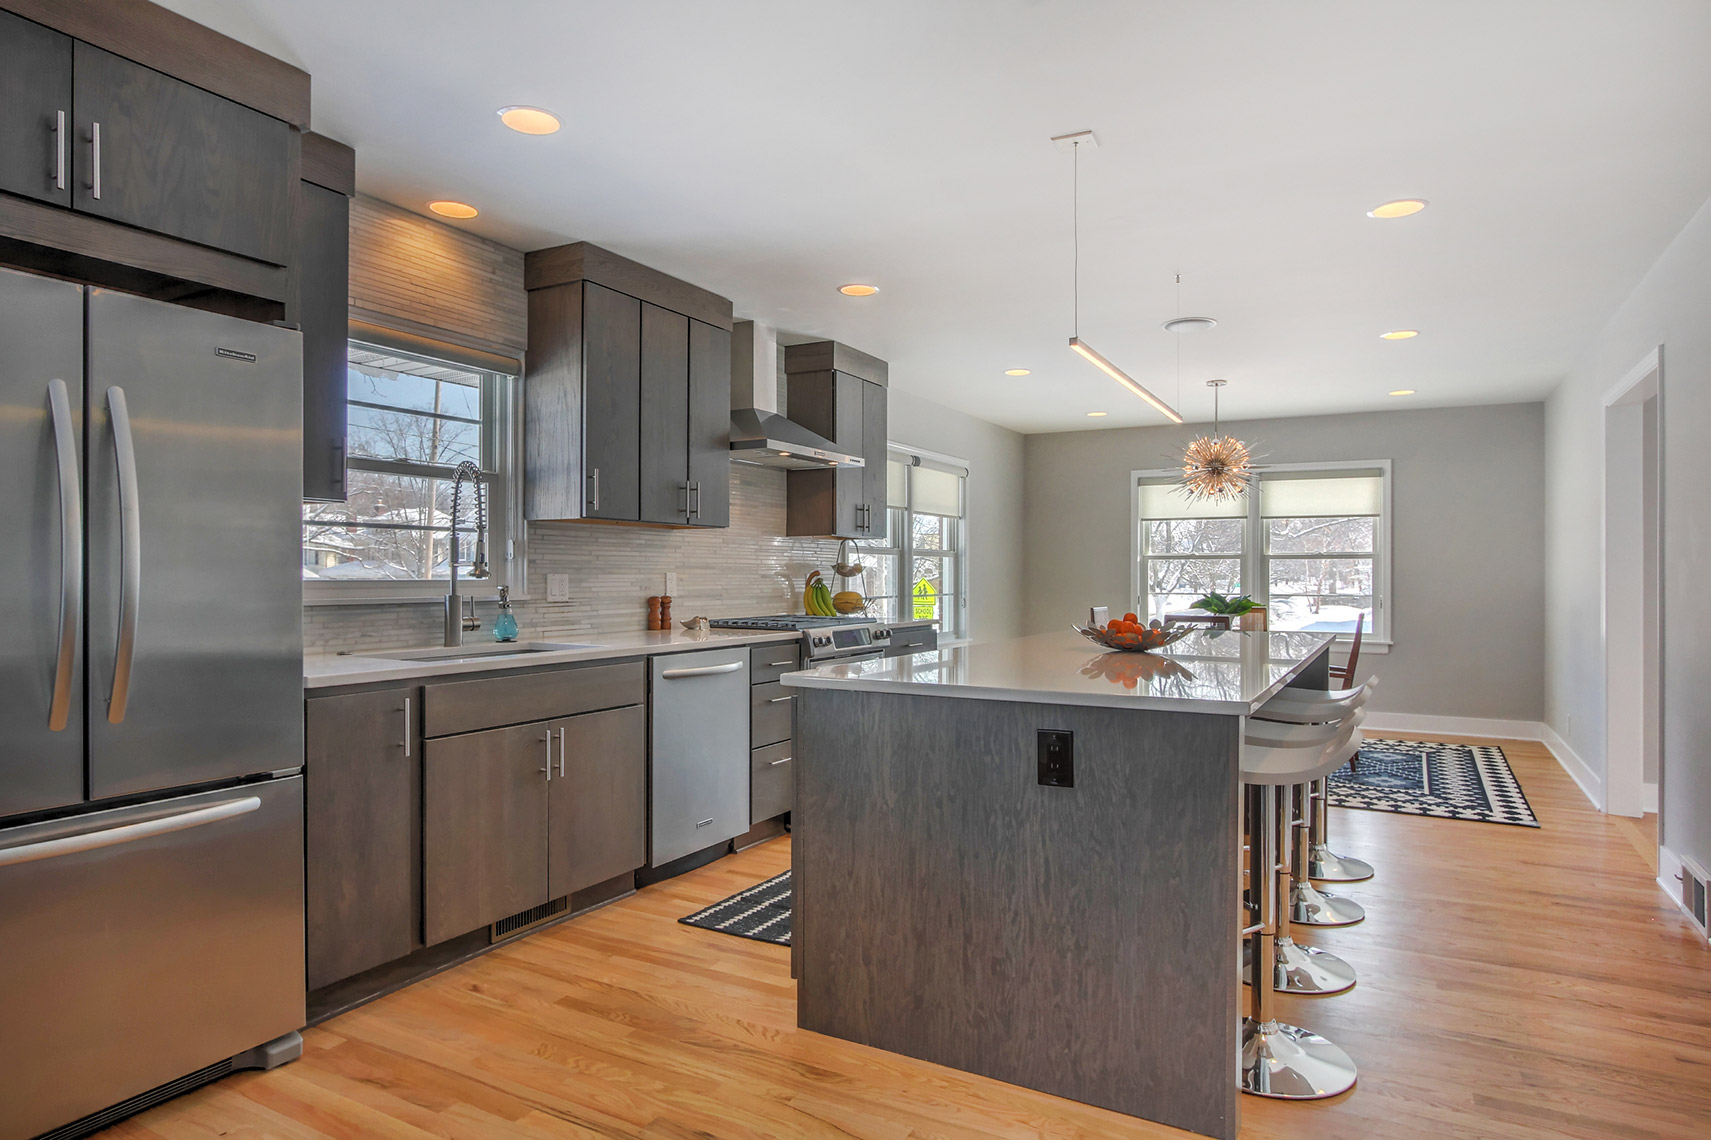 2015 Kitchen Trends Report